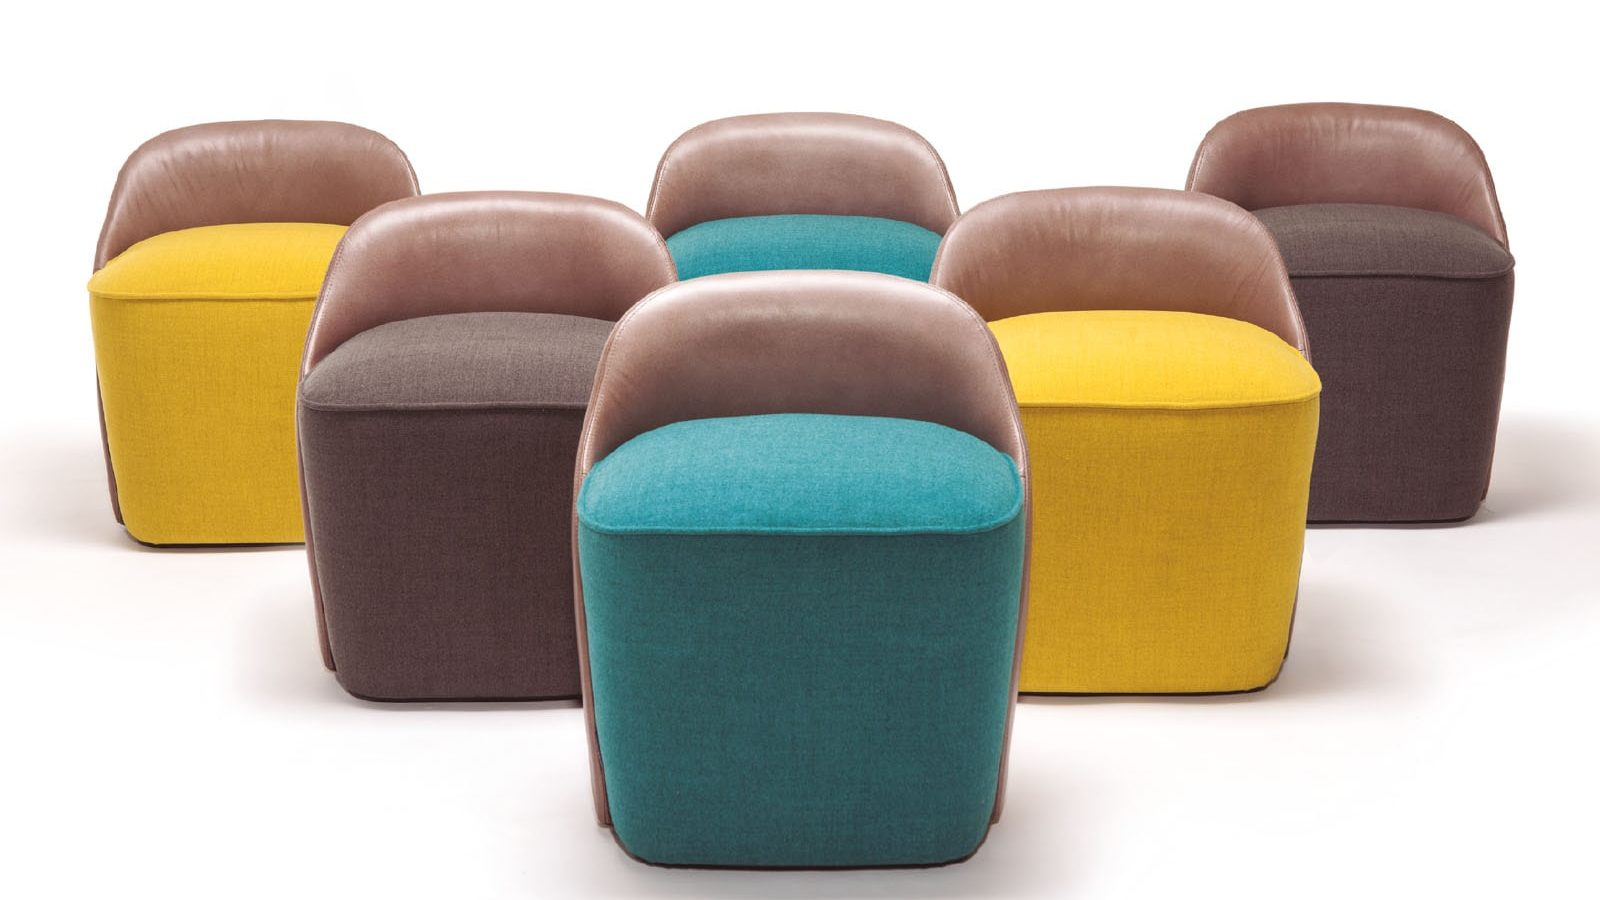 Verges Lagranja Room pouf